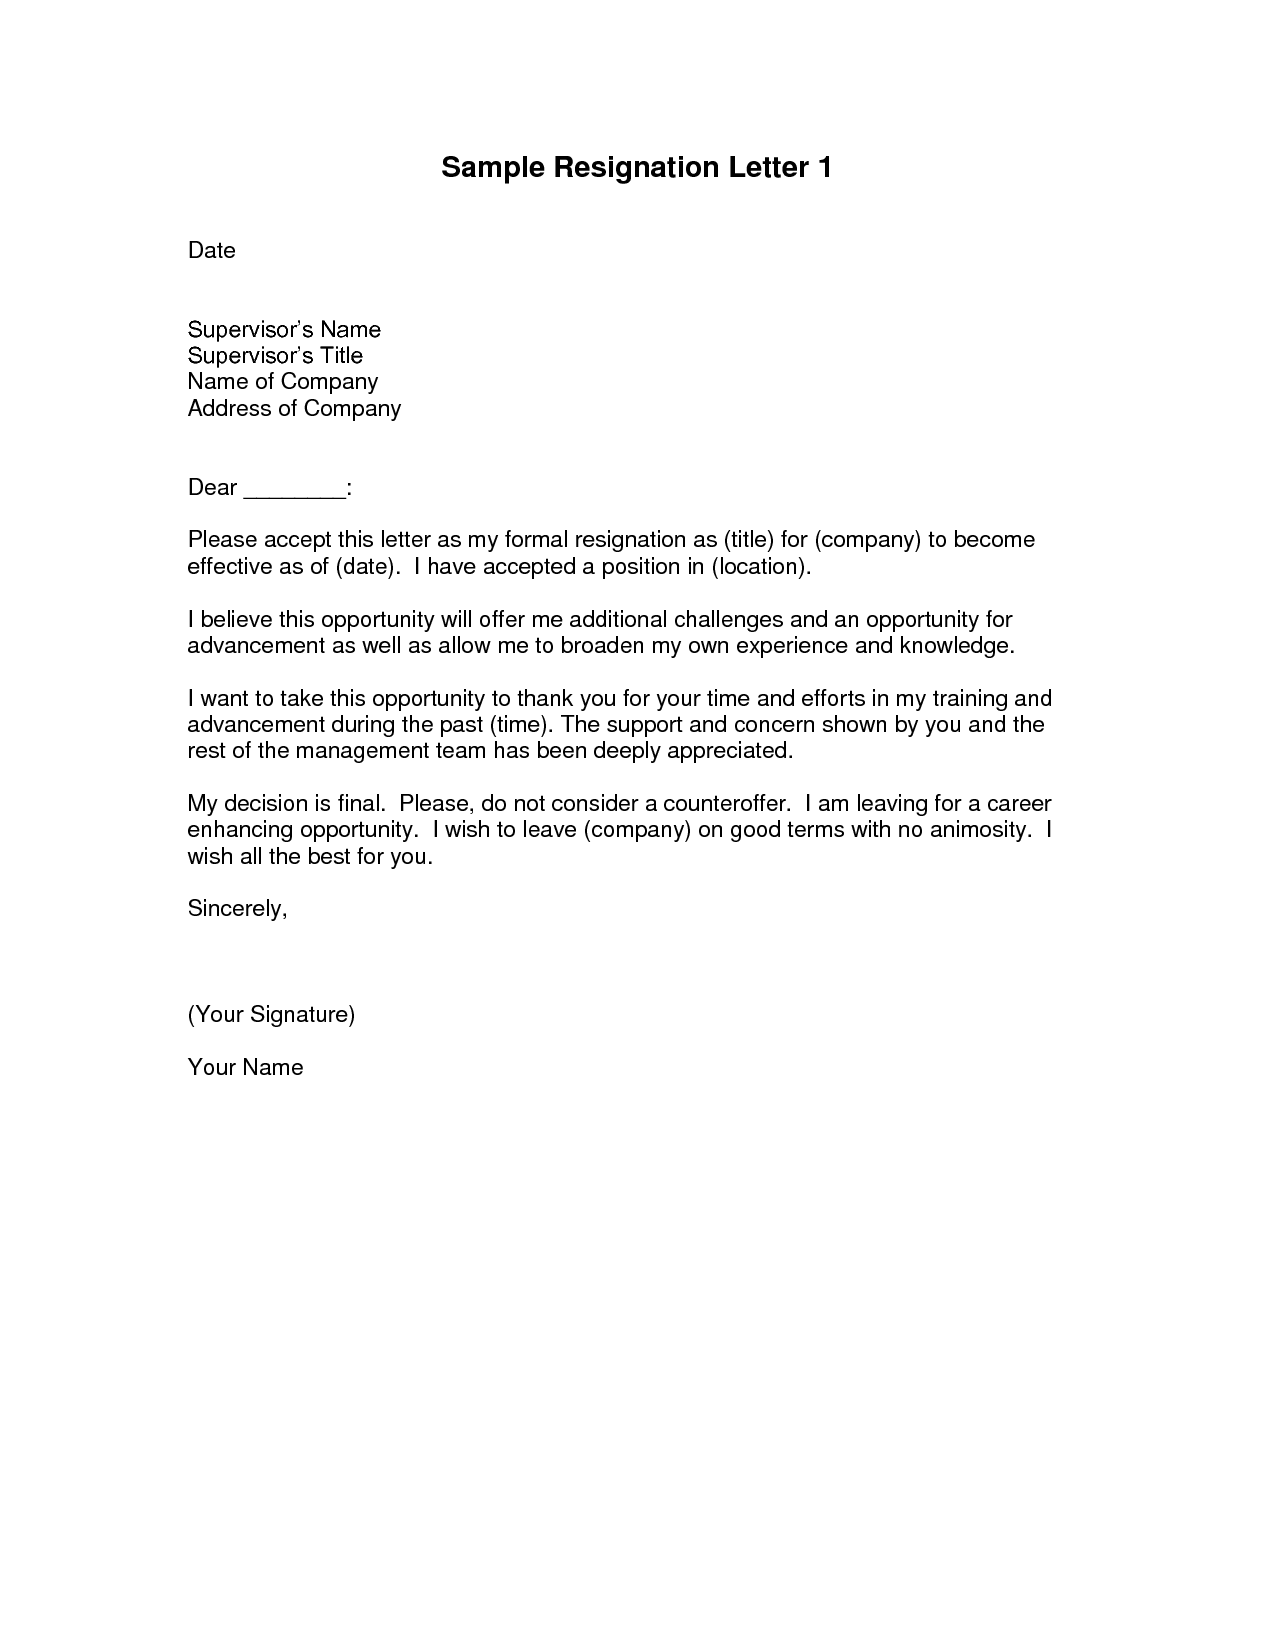 sample resignation letter template professional - Board Member Resignation Letter Sample